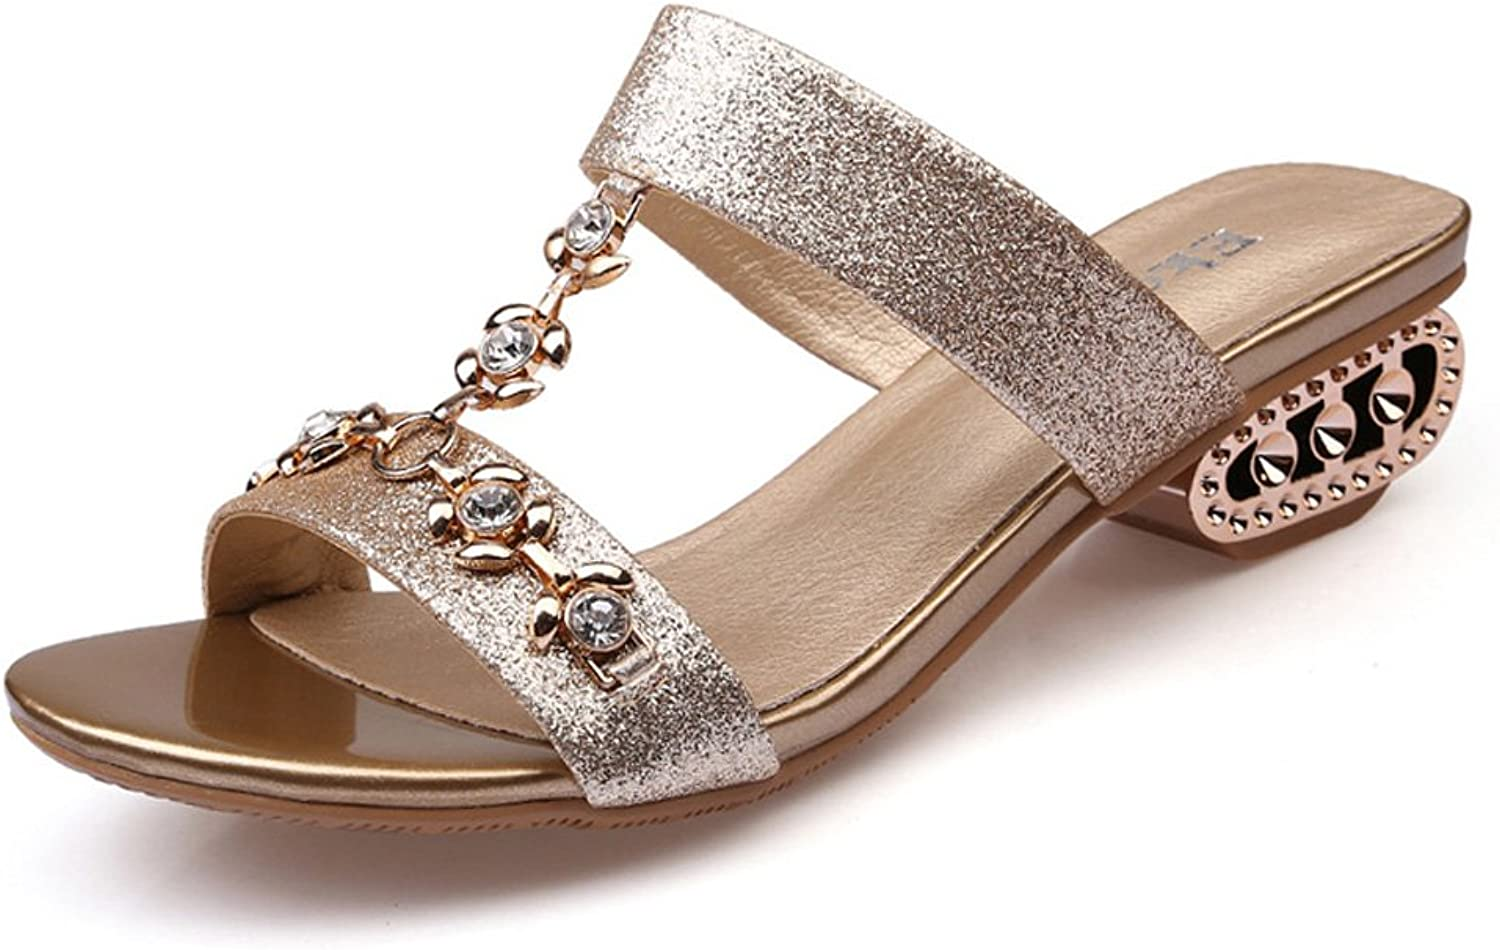 Genepeg Womens Sandals Ladies Party shoes Summer Rhinestone Cut-Outs Medium Heels shoes